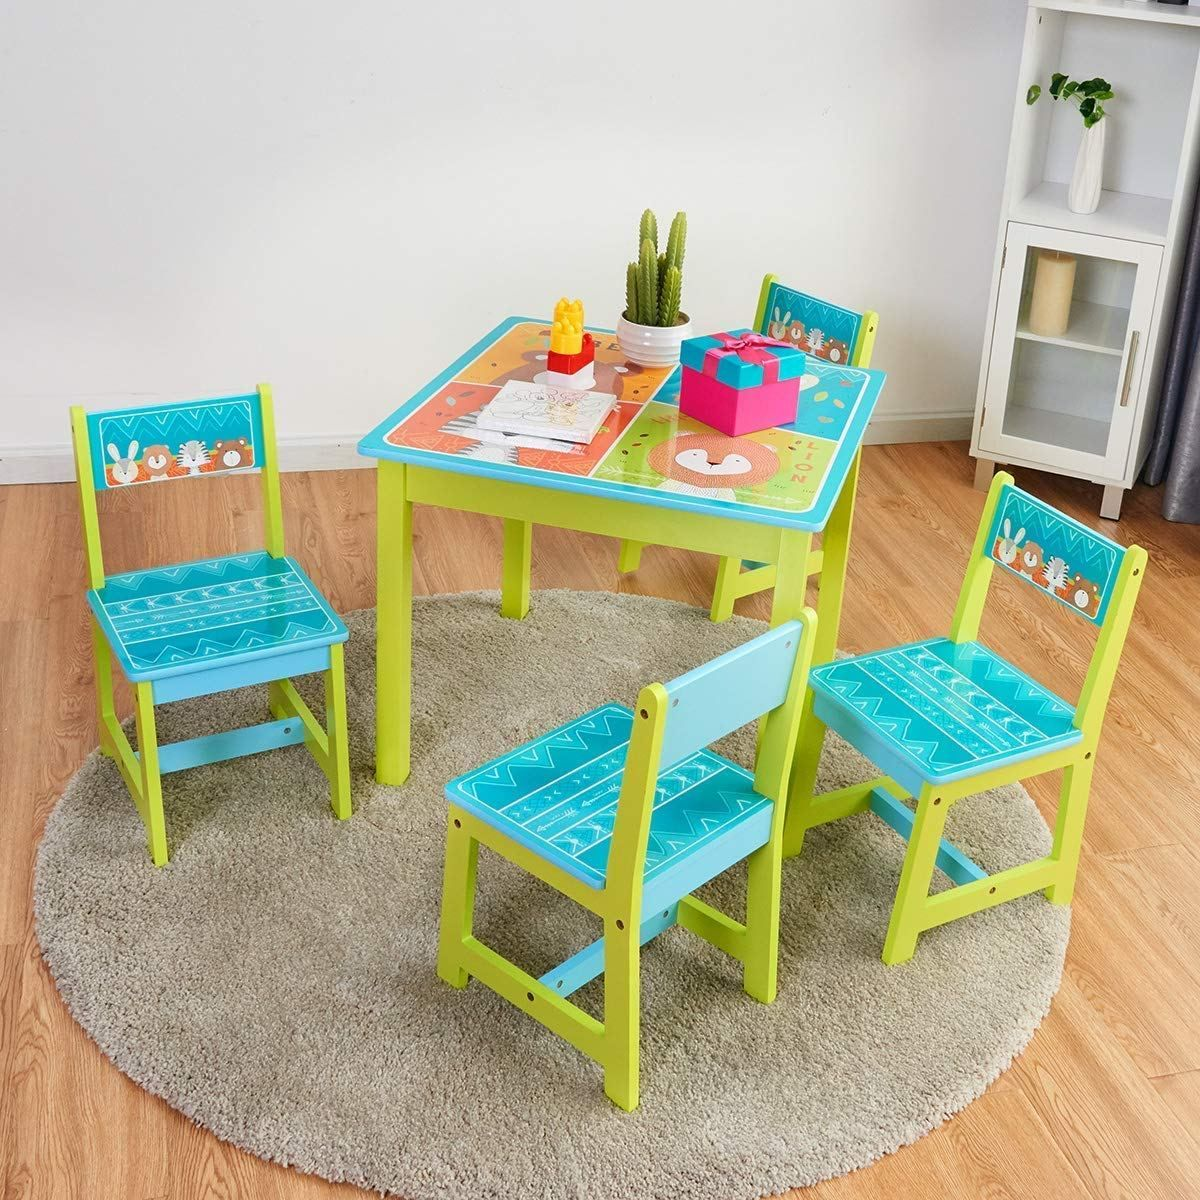 Baby Joy Kids Table And 4 Chairs Set Wooden Mdf Desk For Studying Playing Dining Indoors Outdoors Activity Toddler Baby Gift Desk Furniture Cartoon Pattern Kids Table Set Kid